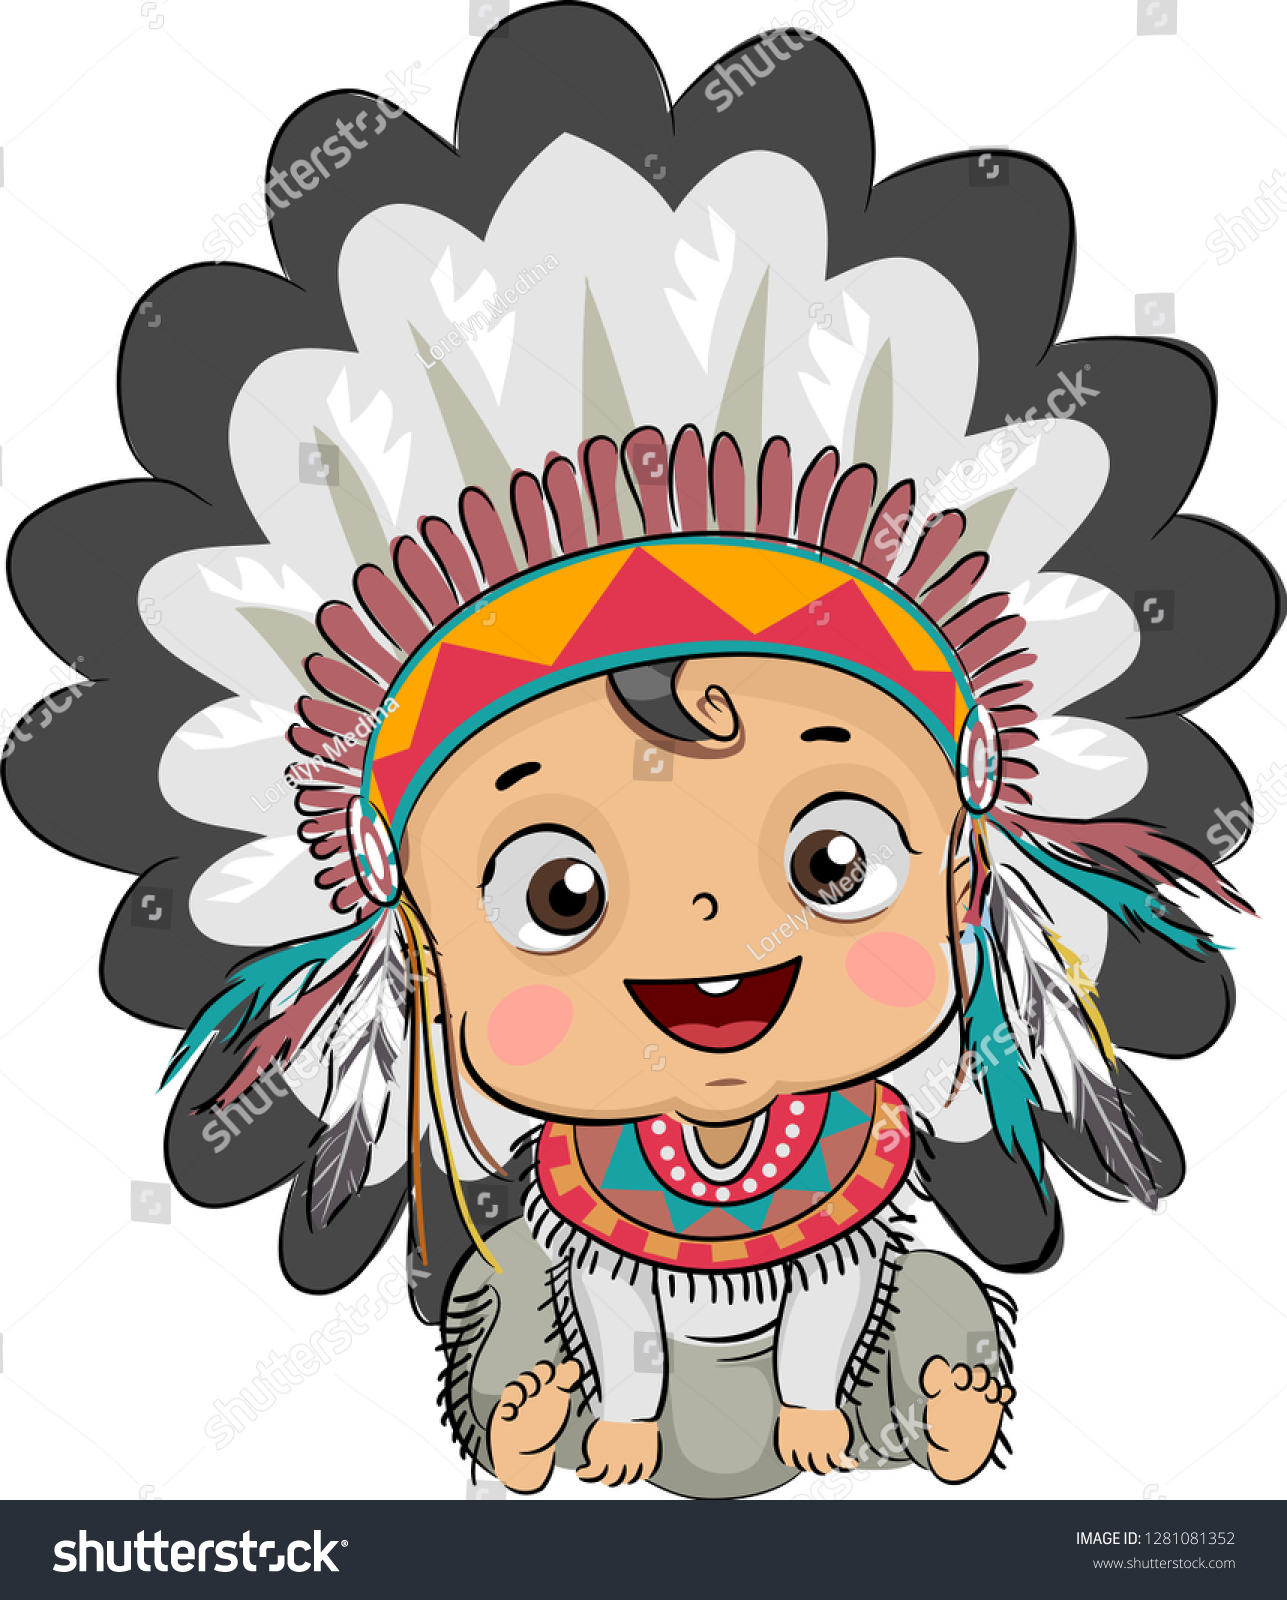 Native American Clipart Transparent Background - Indian Headdress Clipart |  Transparent PNG Download #5340522 - Vippng